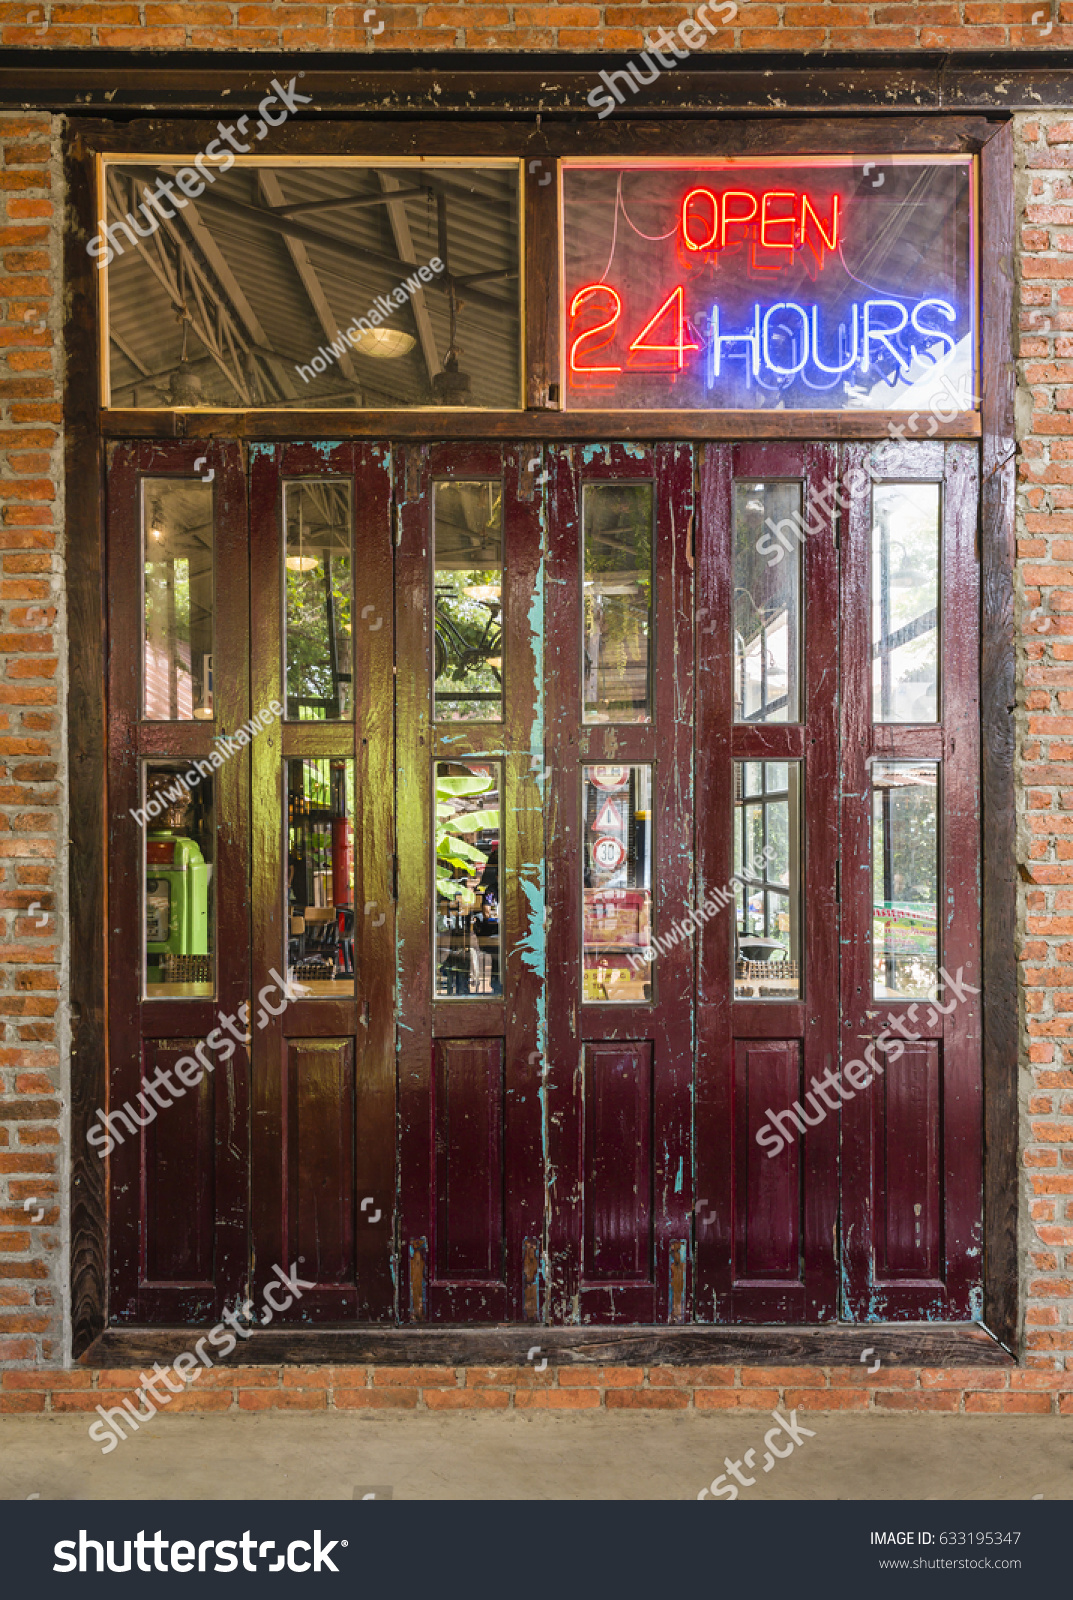 open 24 hours sign on the old crimson door with brick wall and cement floor in & Open 24 Hours Sign On Old Stock Photo 633195347 - Shutterstock